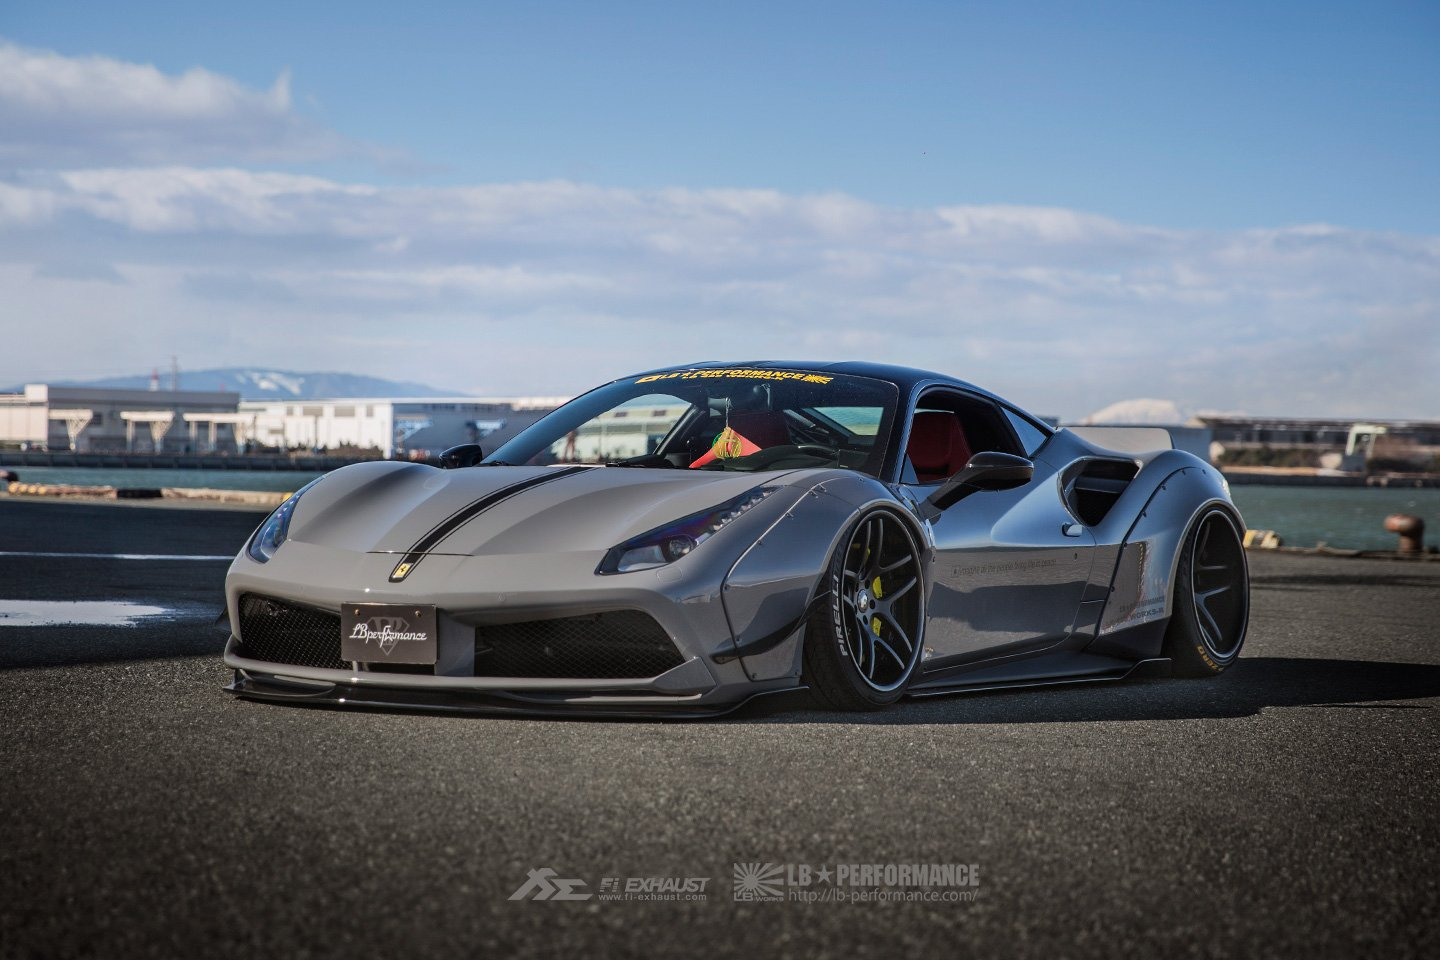 0_1493076276701_ferrari-488-LB-WORKS_Gray_fi-exhaust_3.jpg